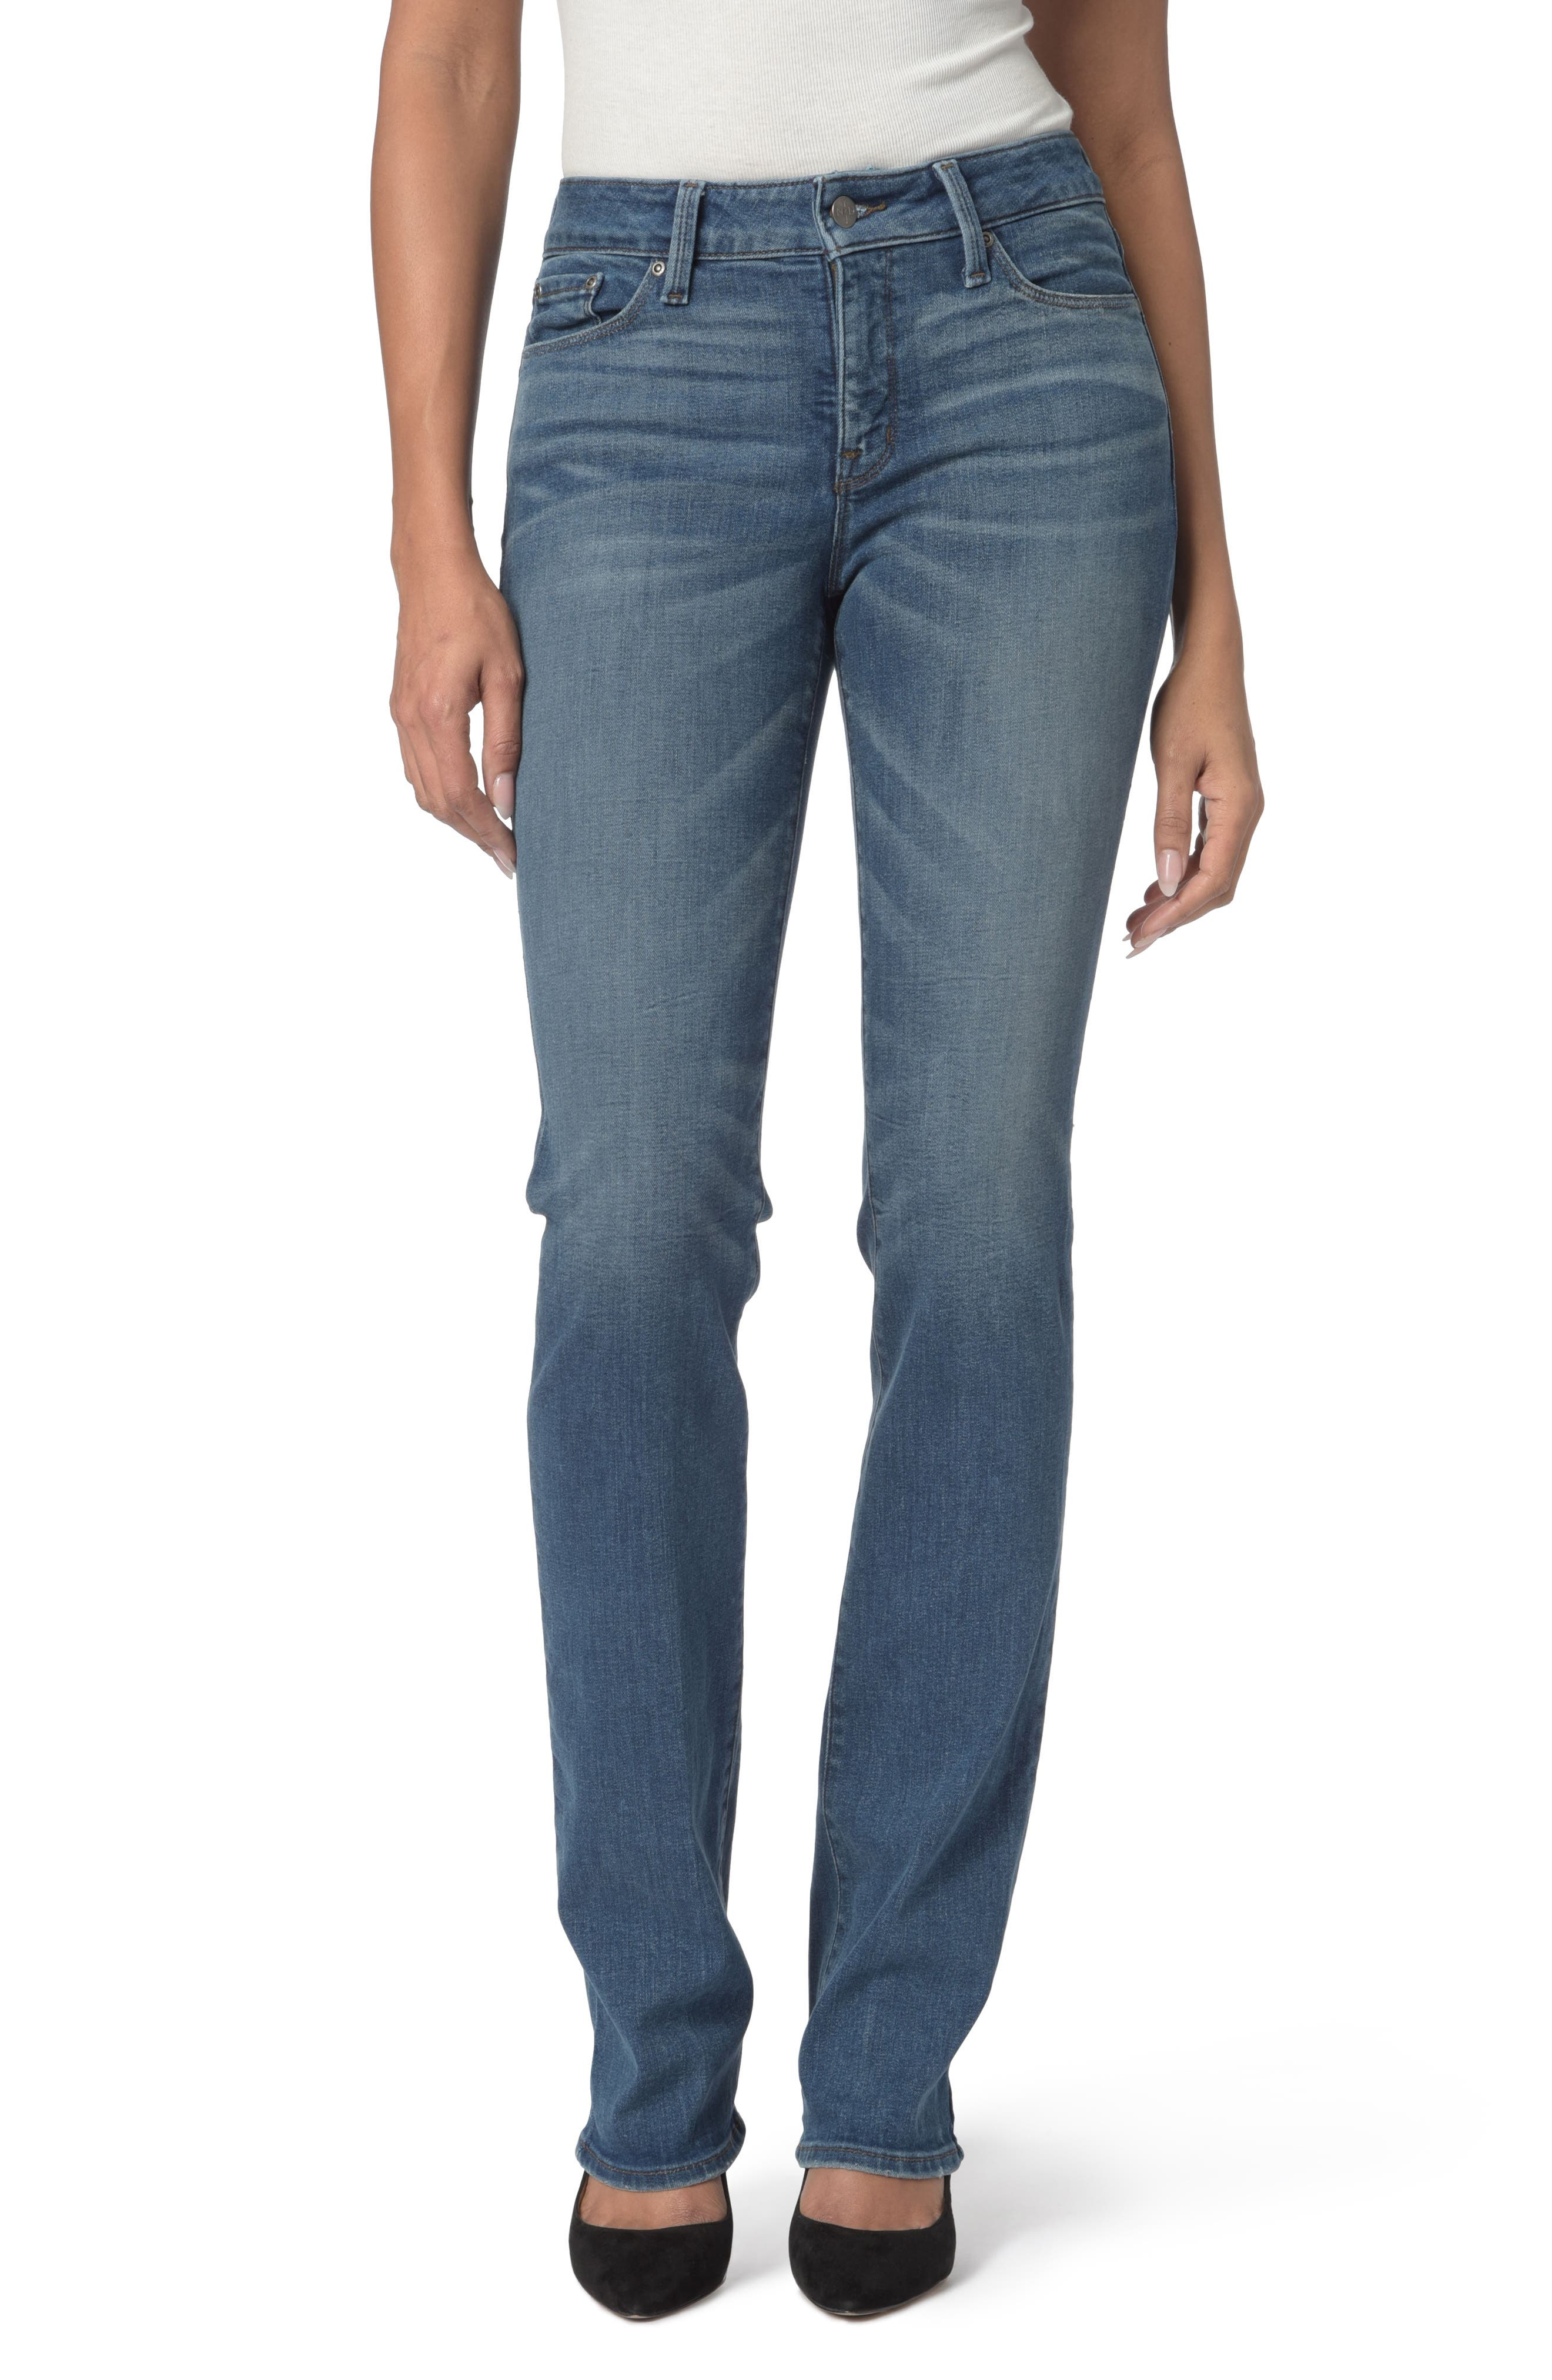 Marilyn Stretch Straight Leg Jeans,                         Main,                         color, Noma